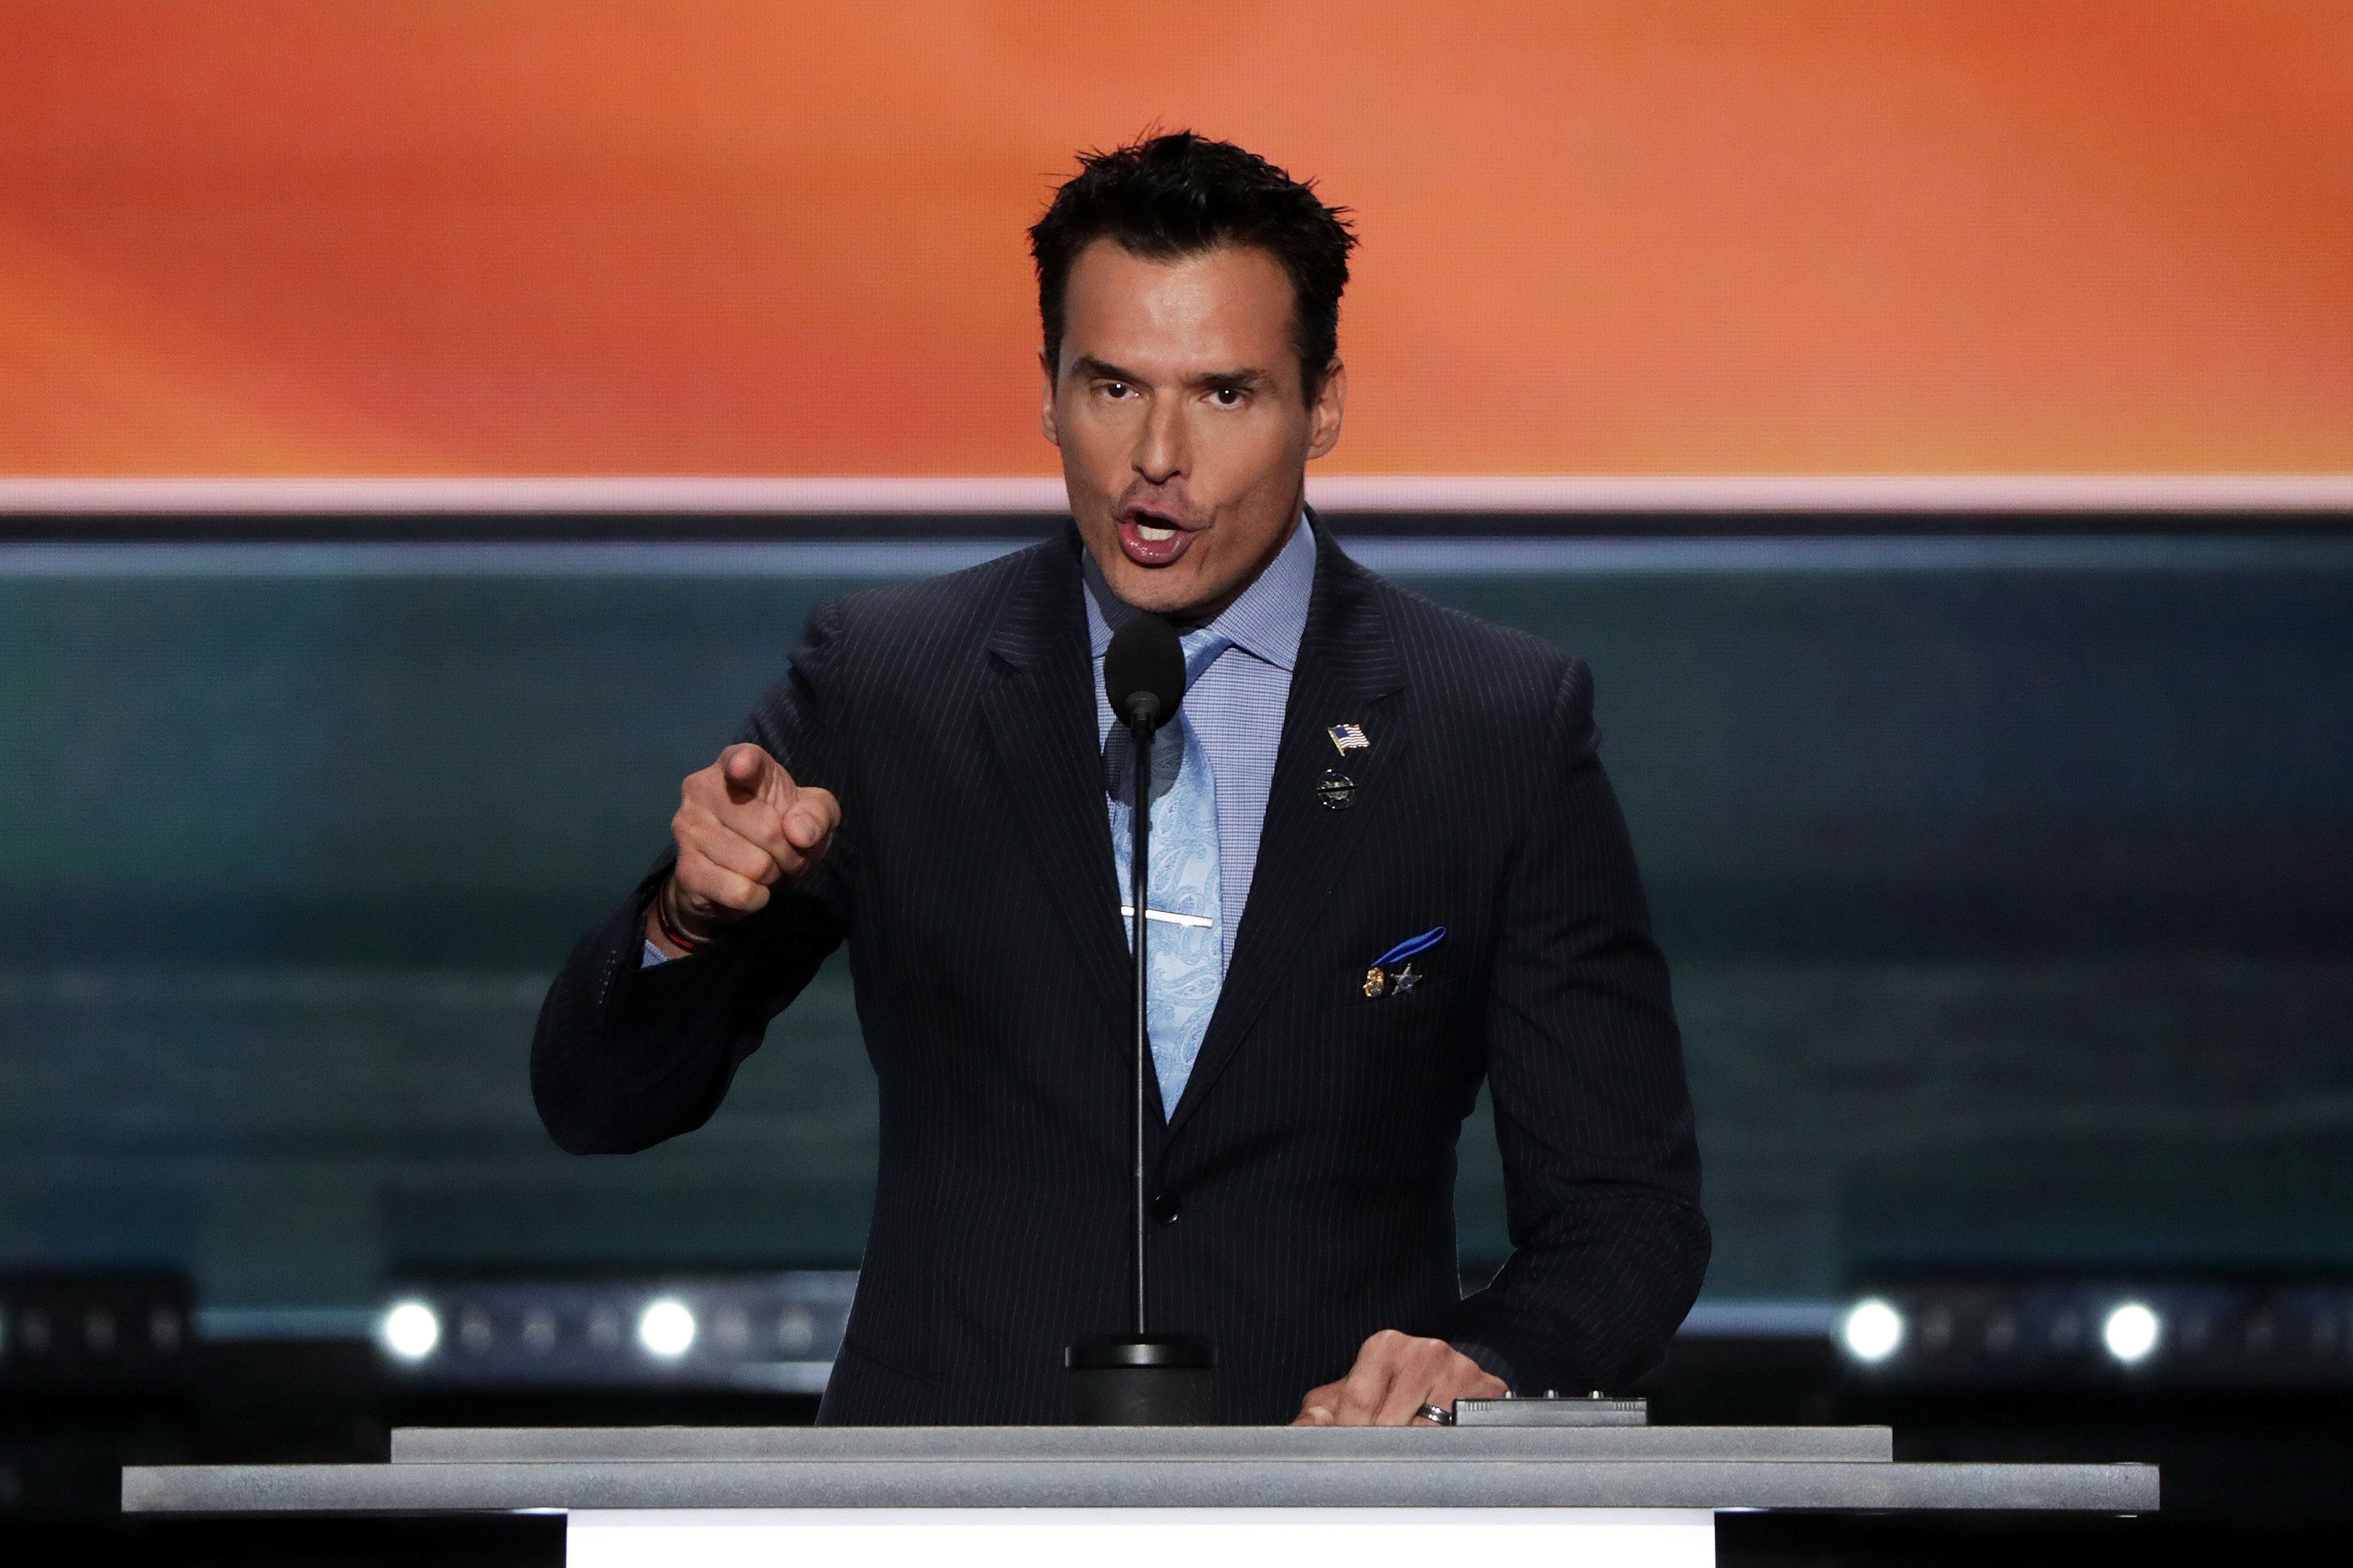 CLEVELAND, OH - JULY 18:  Antonio Sabato Jr. delivers a speech on the first day of the Republican National Convention on July 18, 2016 at the Quicken Loans Arena in Cleveland, Ohio. An estimated 50,000 people are expected in Cleveland, including hundreds of protesters and members of the media. The four-day Republican National Convention kicks off on July 18.  (Photo by Alex Wong/Getty Images)